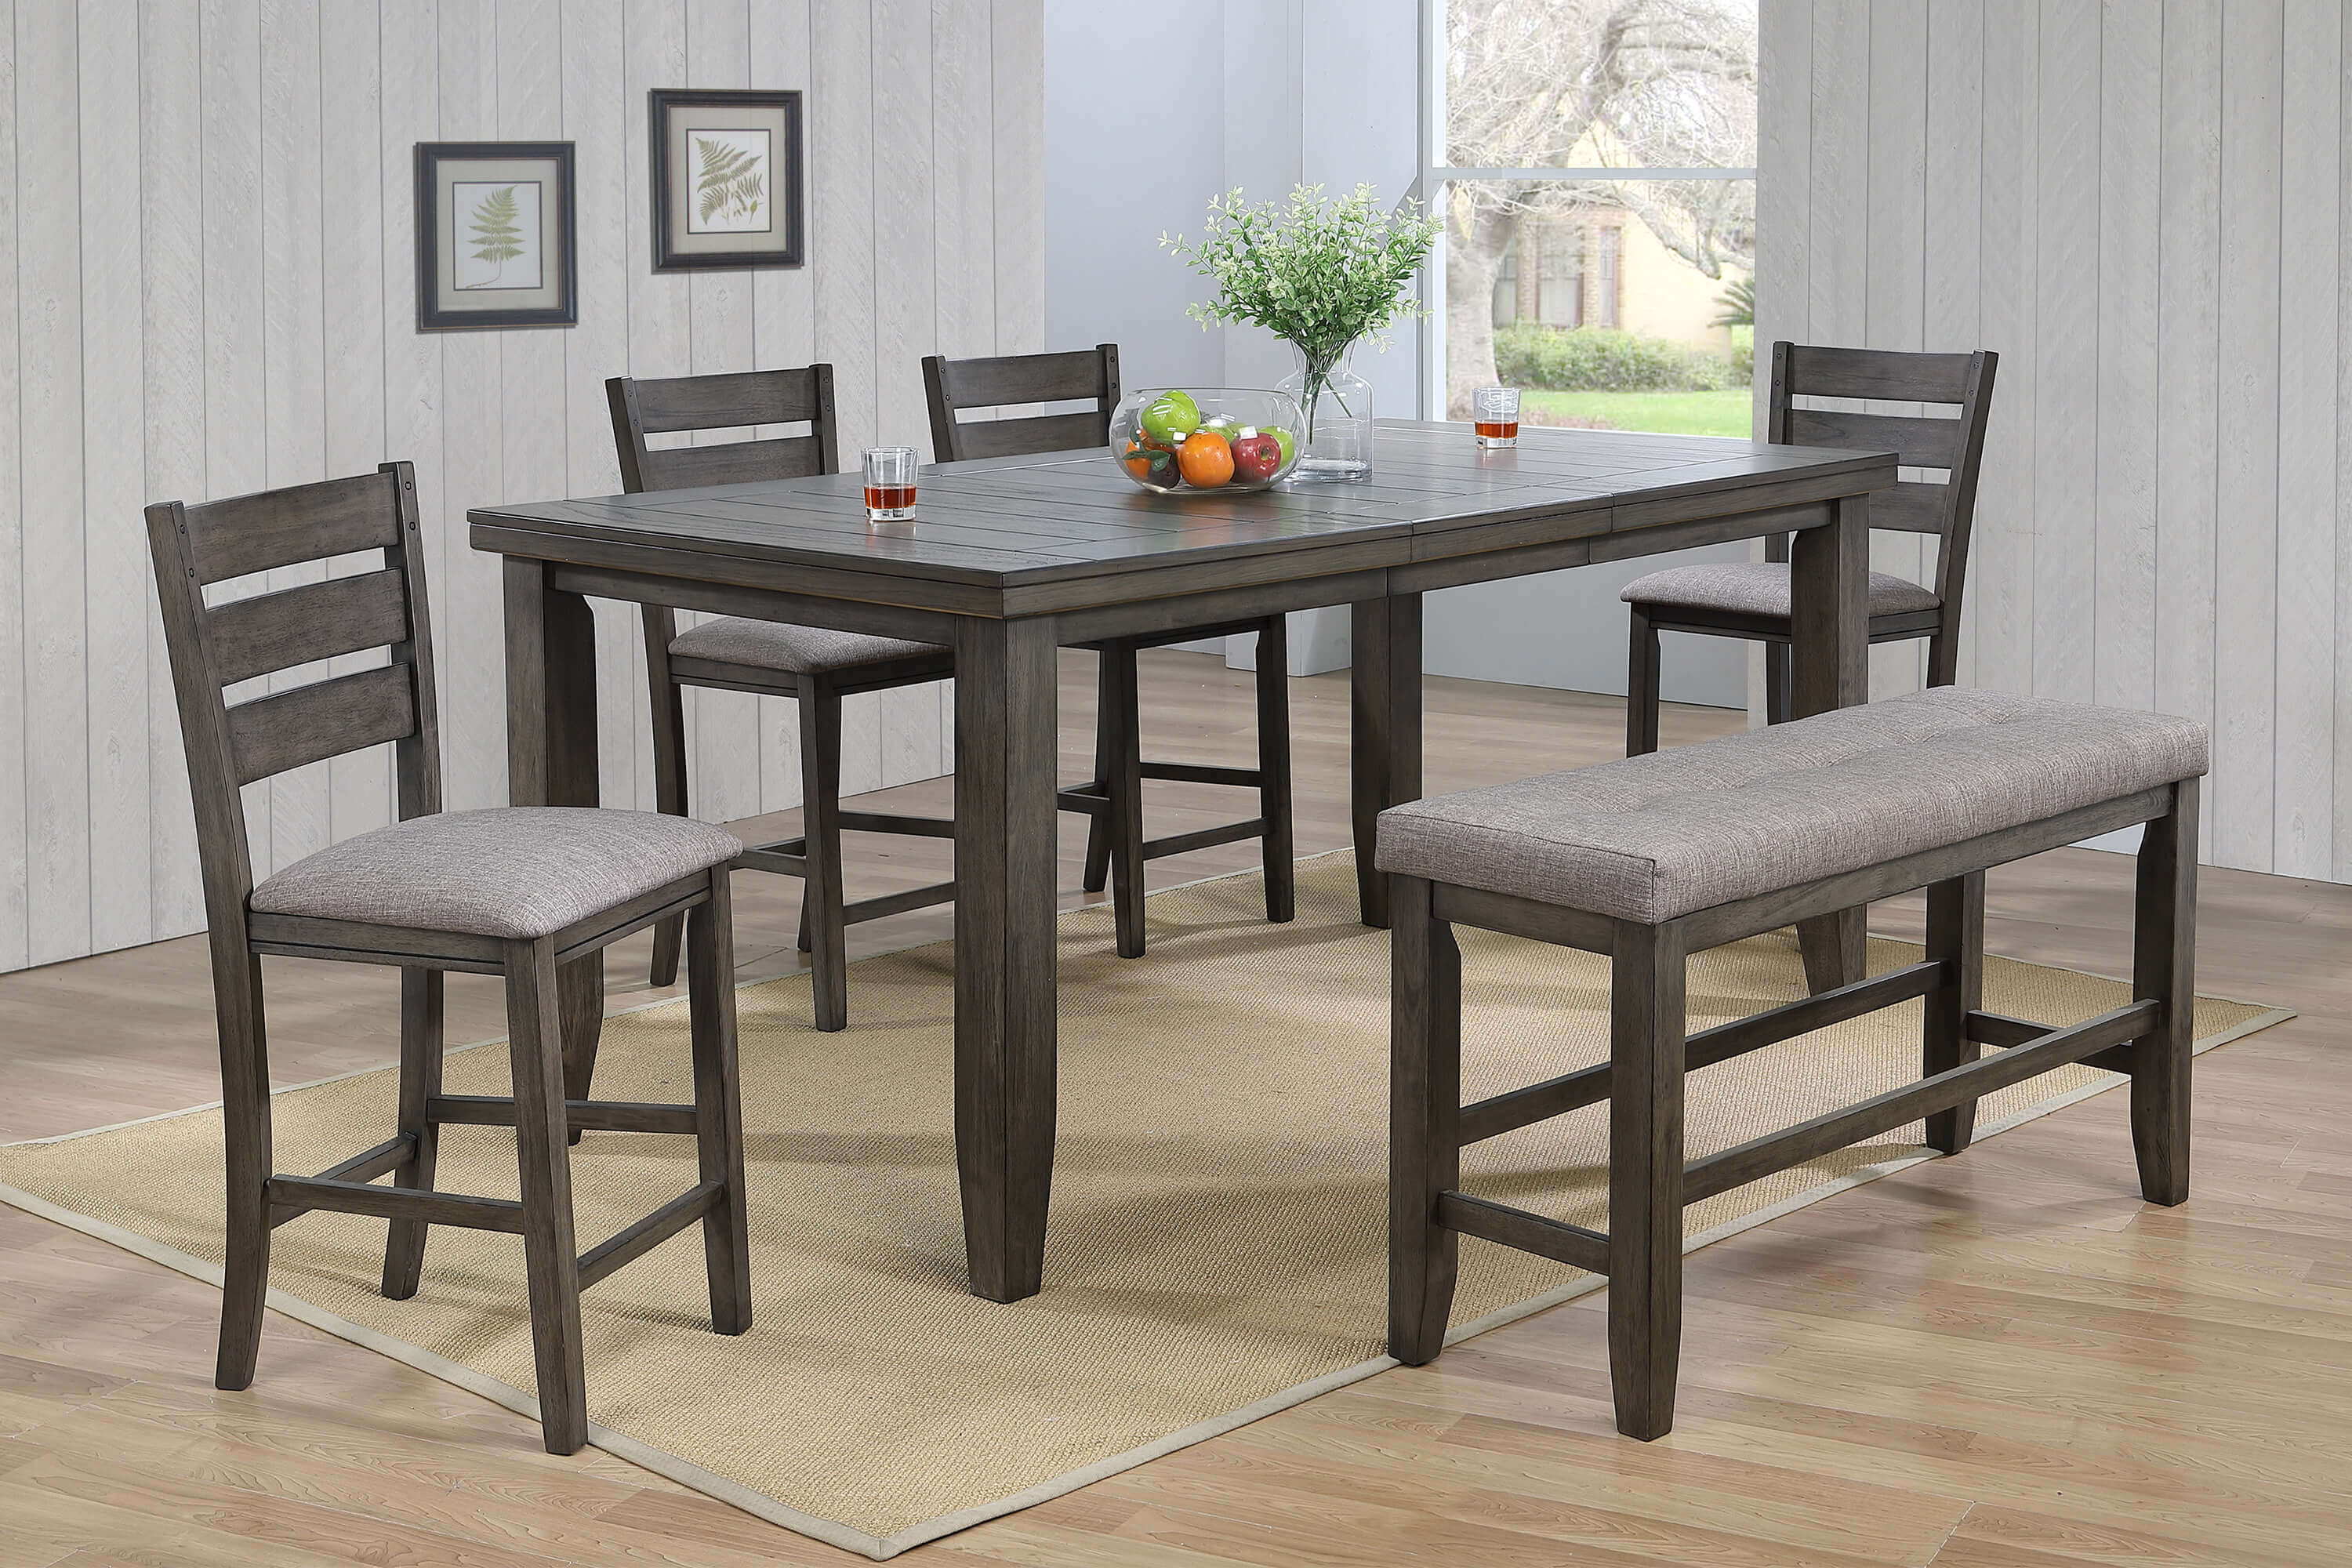 Dining Room Sets With A Bench 2